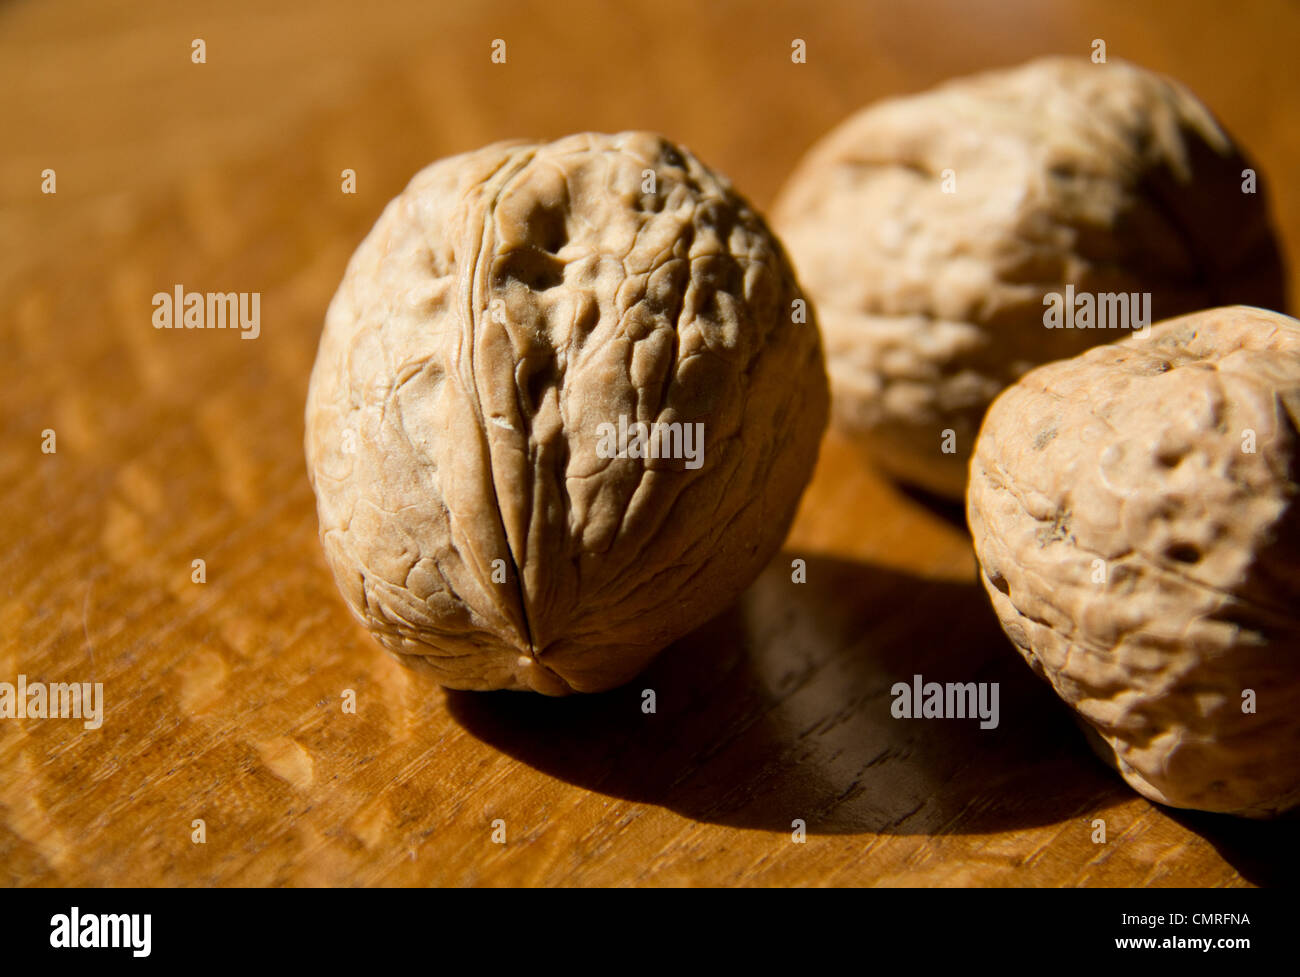 Walnuts on the table on sunlight - Stock Image